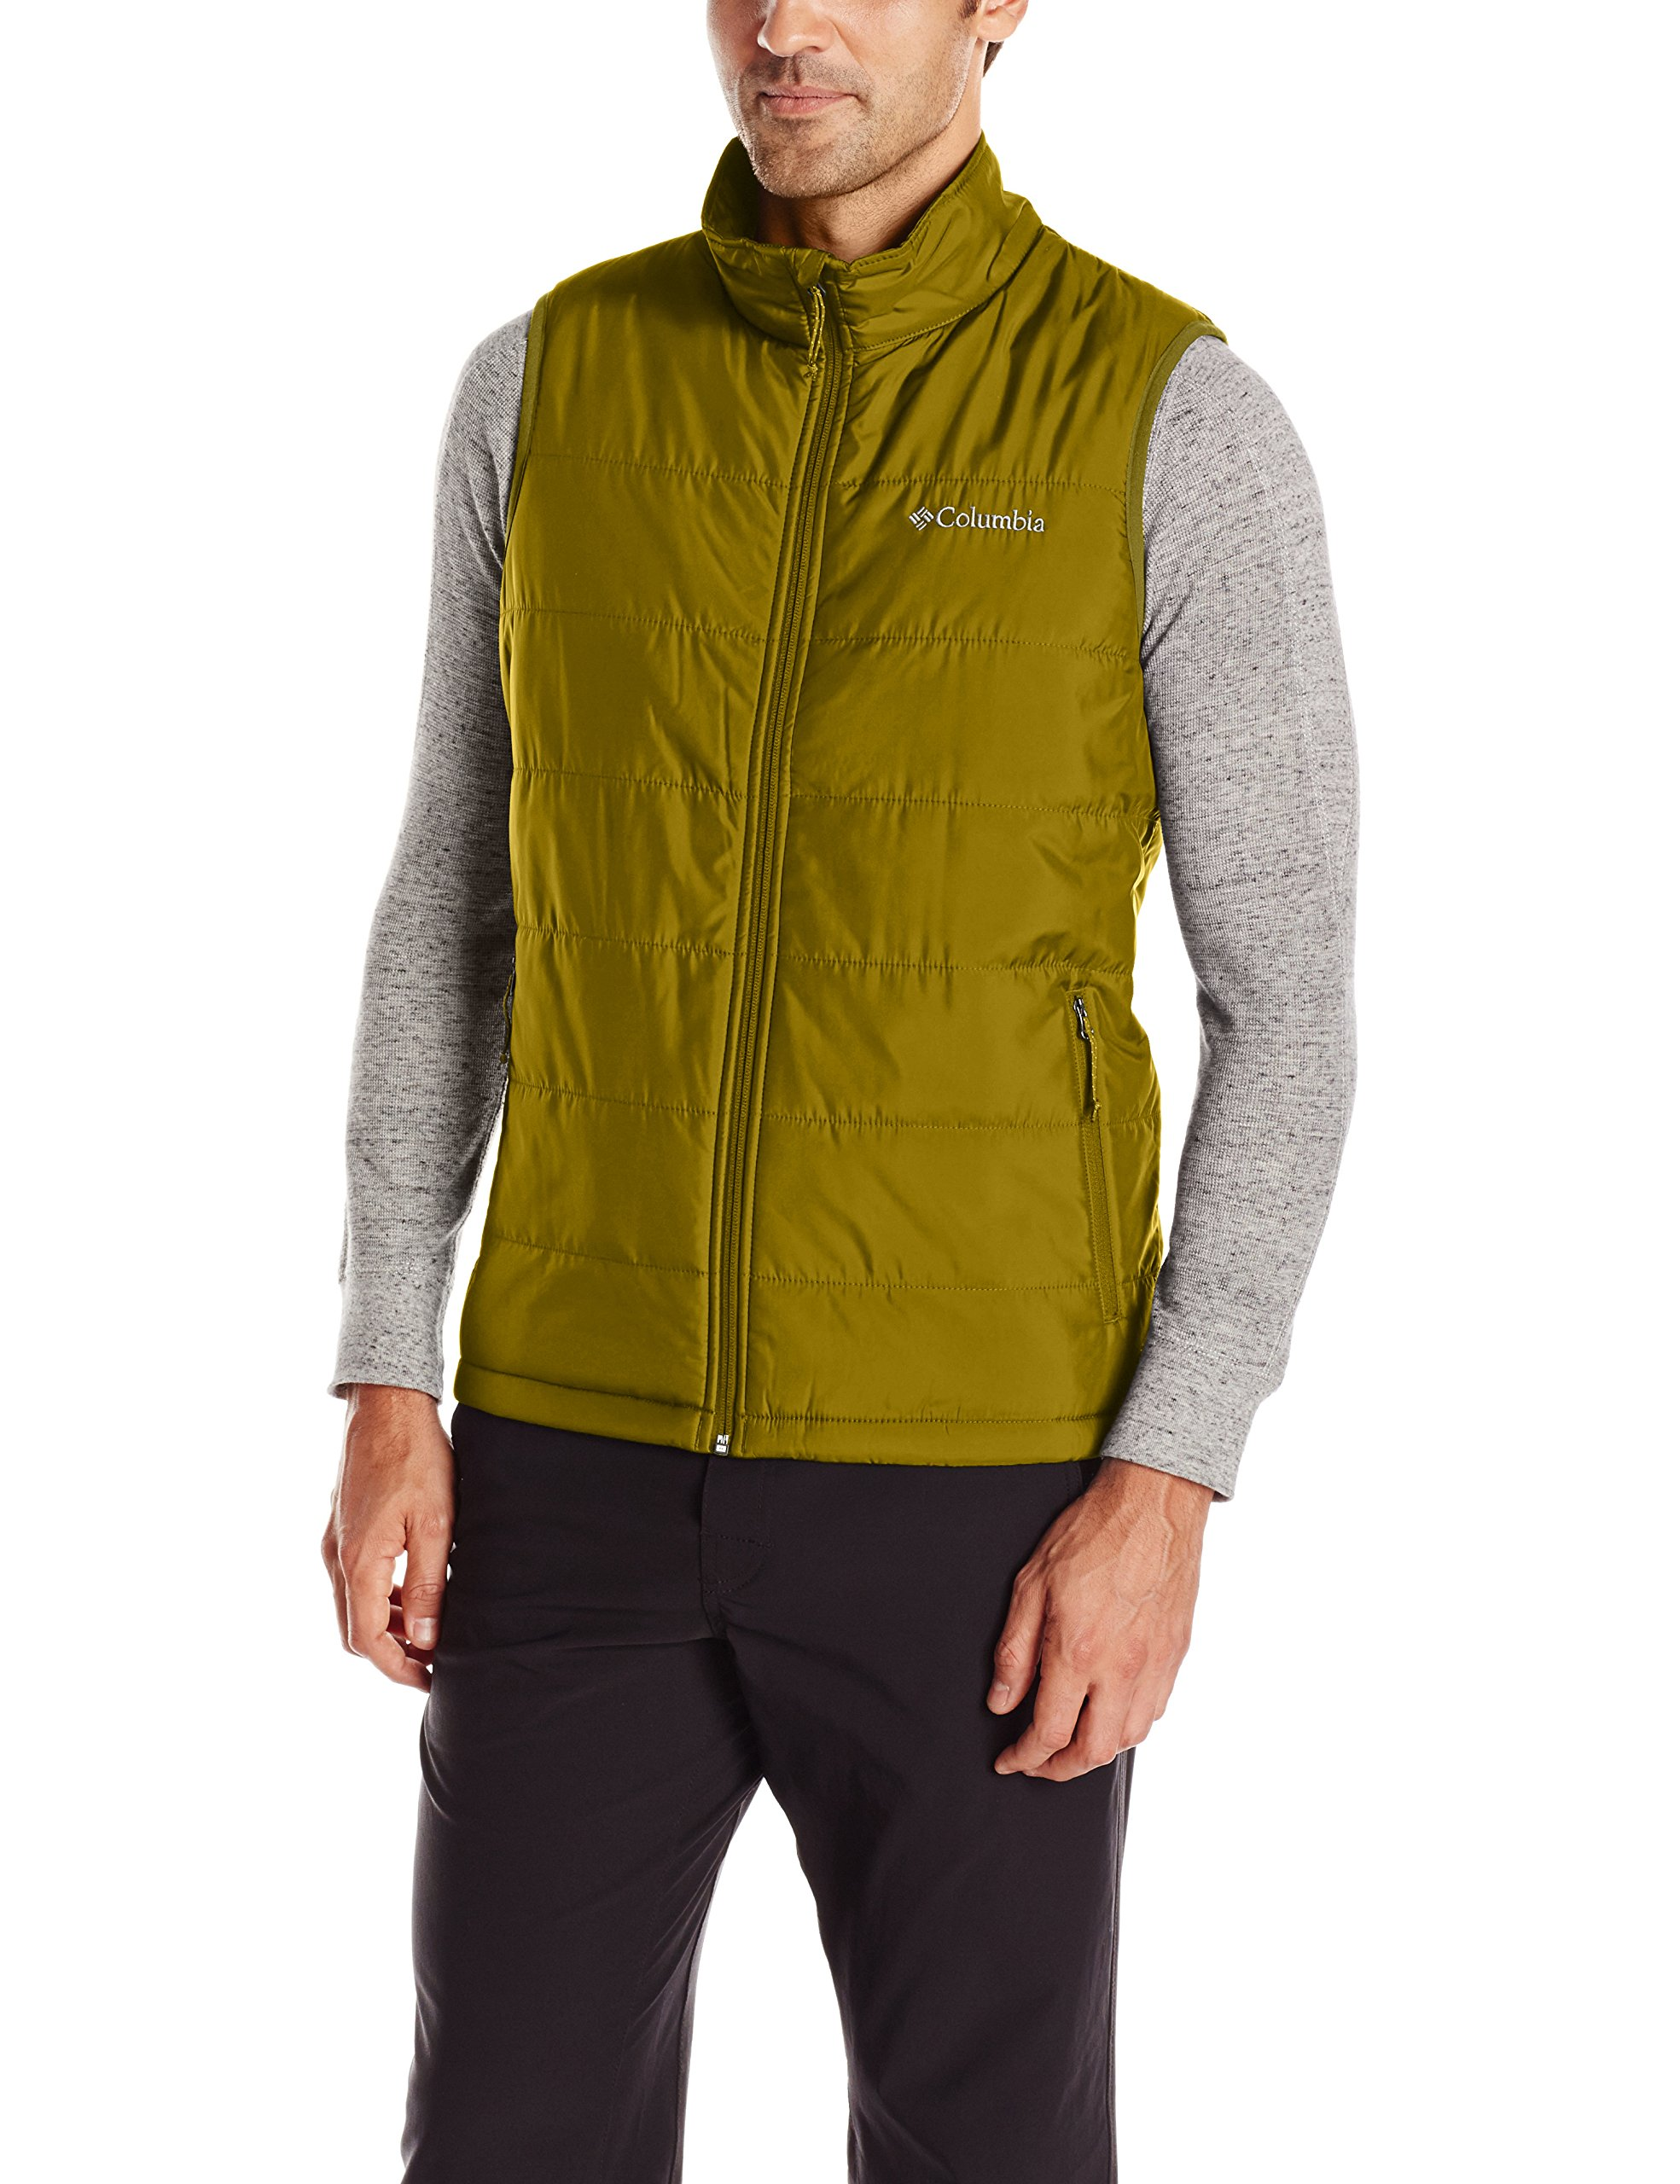 Columbia Men's Saddle Chutes Vest, X-Large, Mossy Green by Columbia